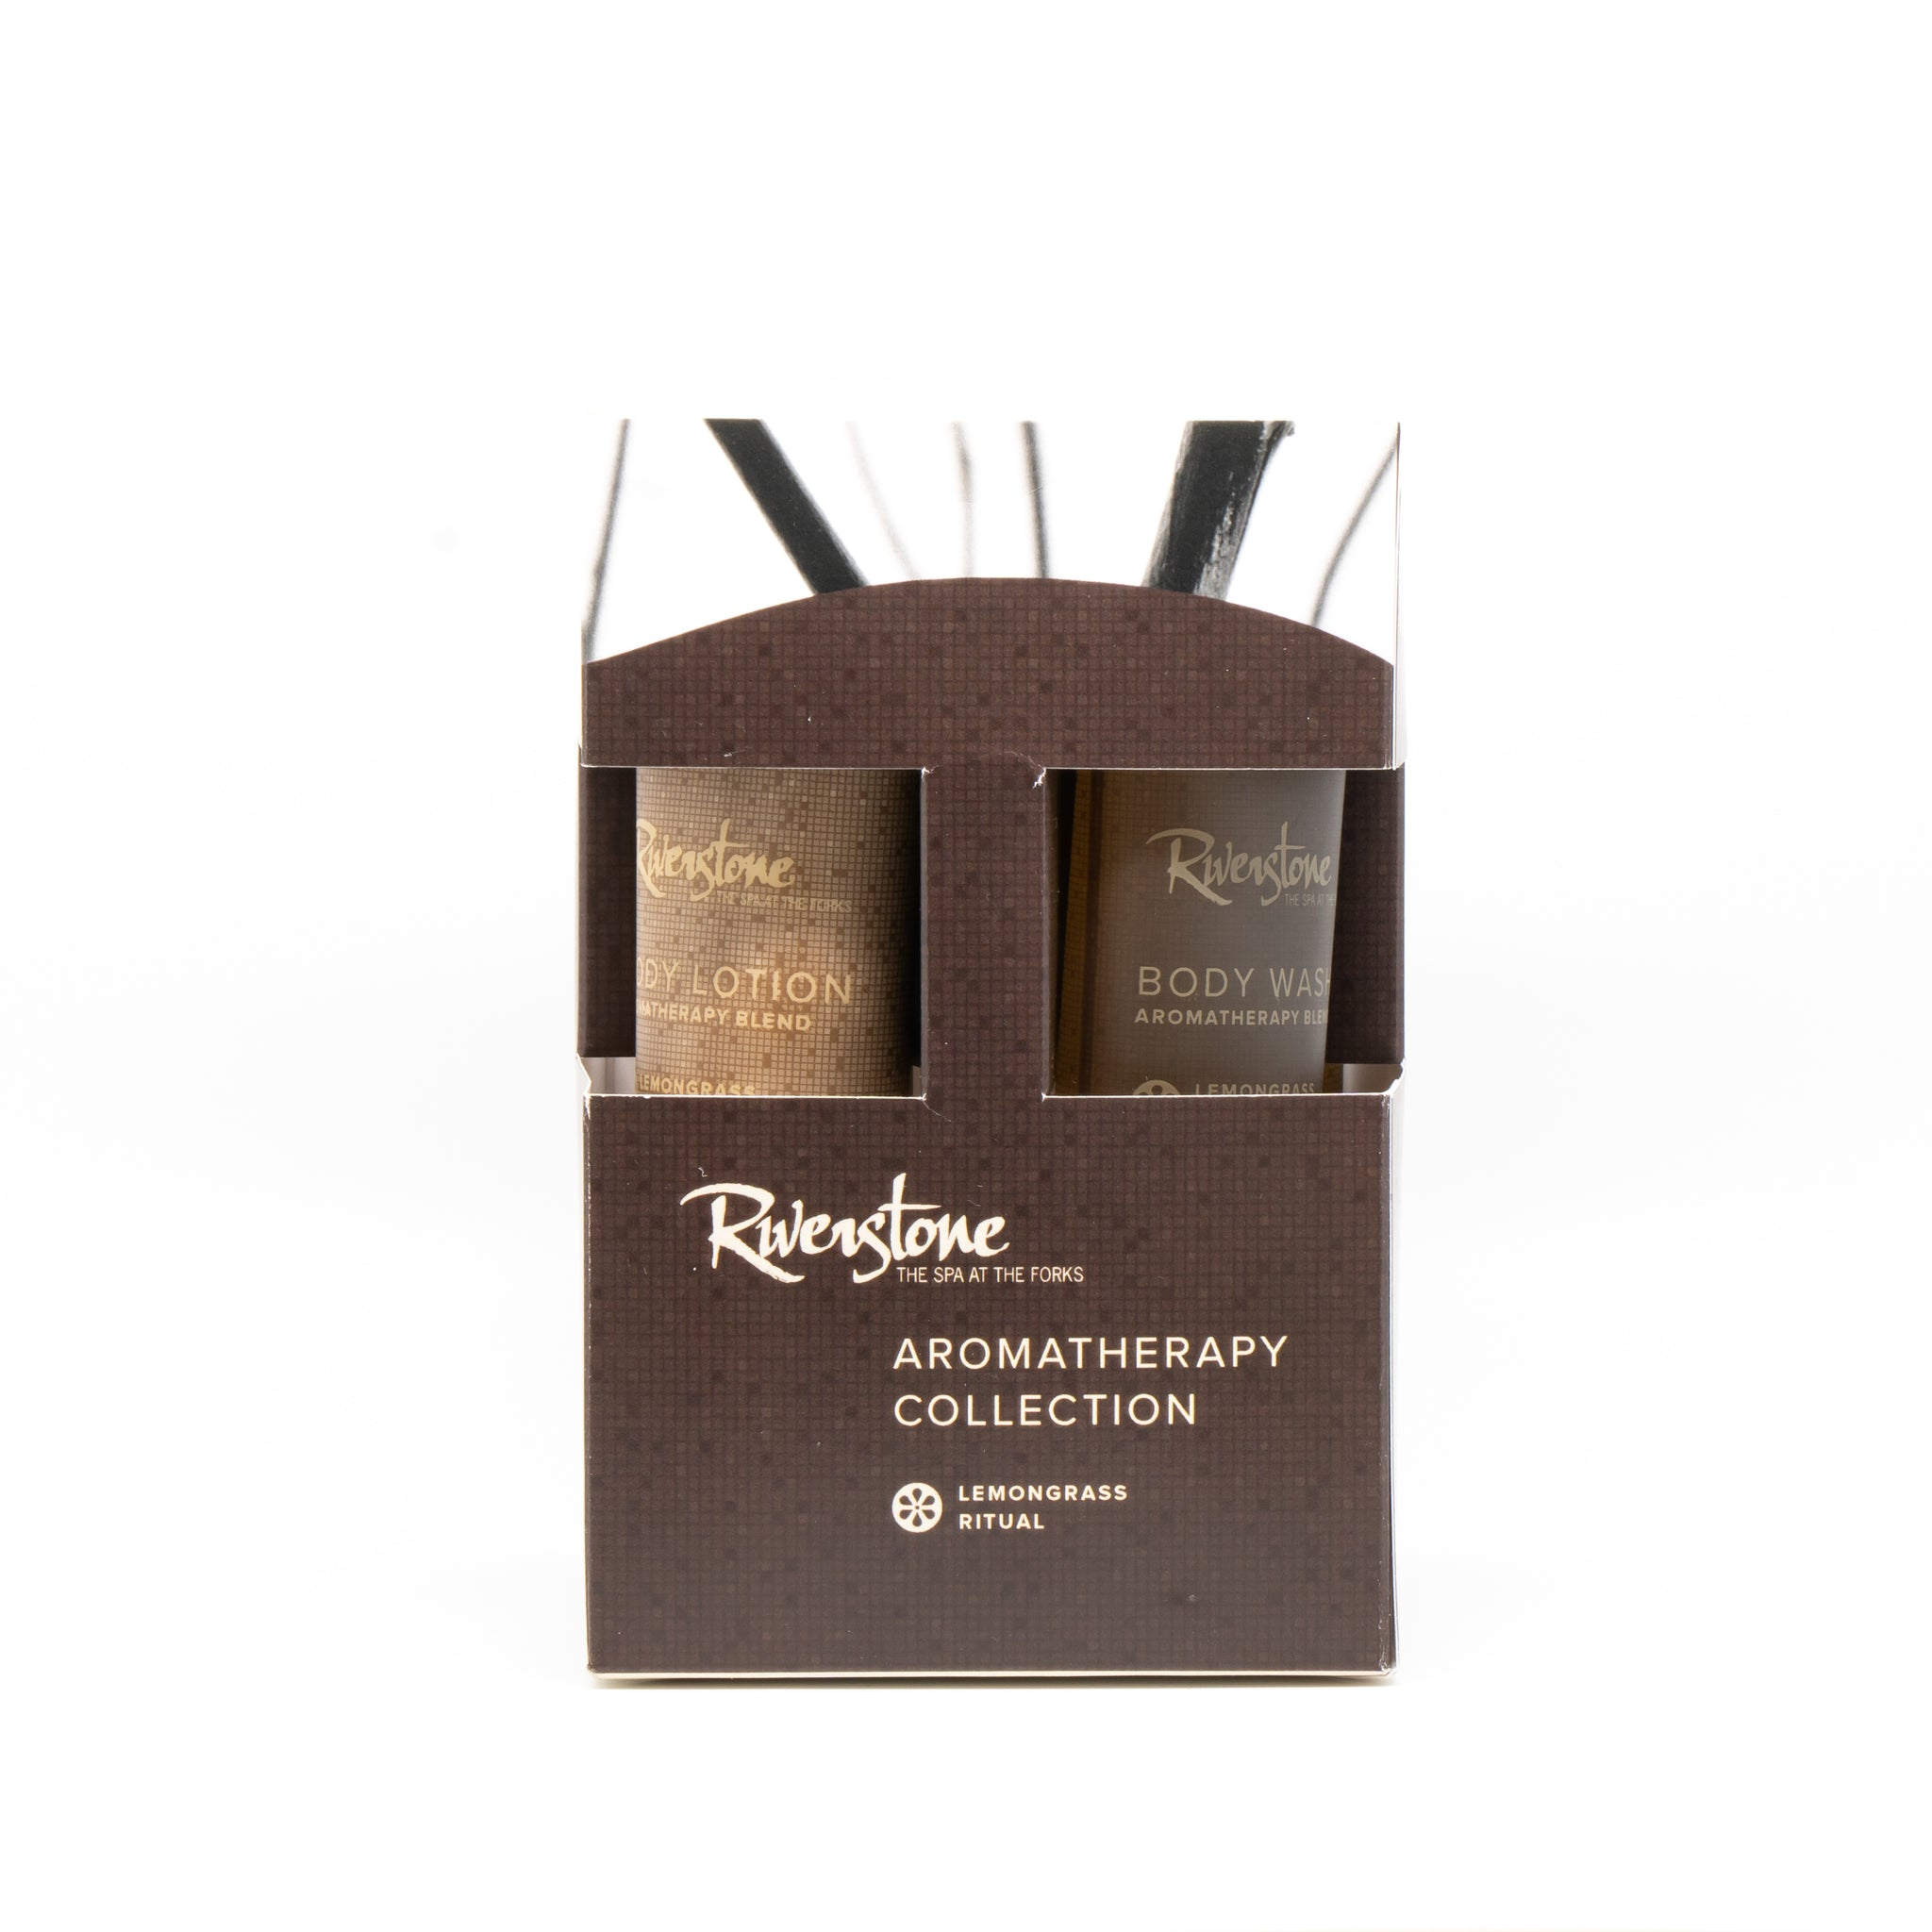 Riverstone Signature Lemongrass Ritual Aromatherapy Collection